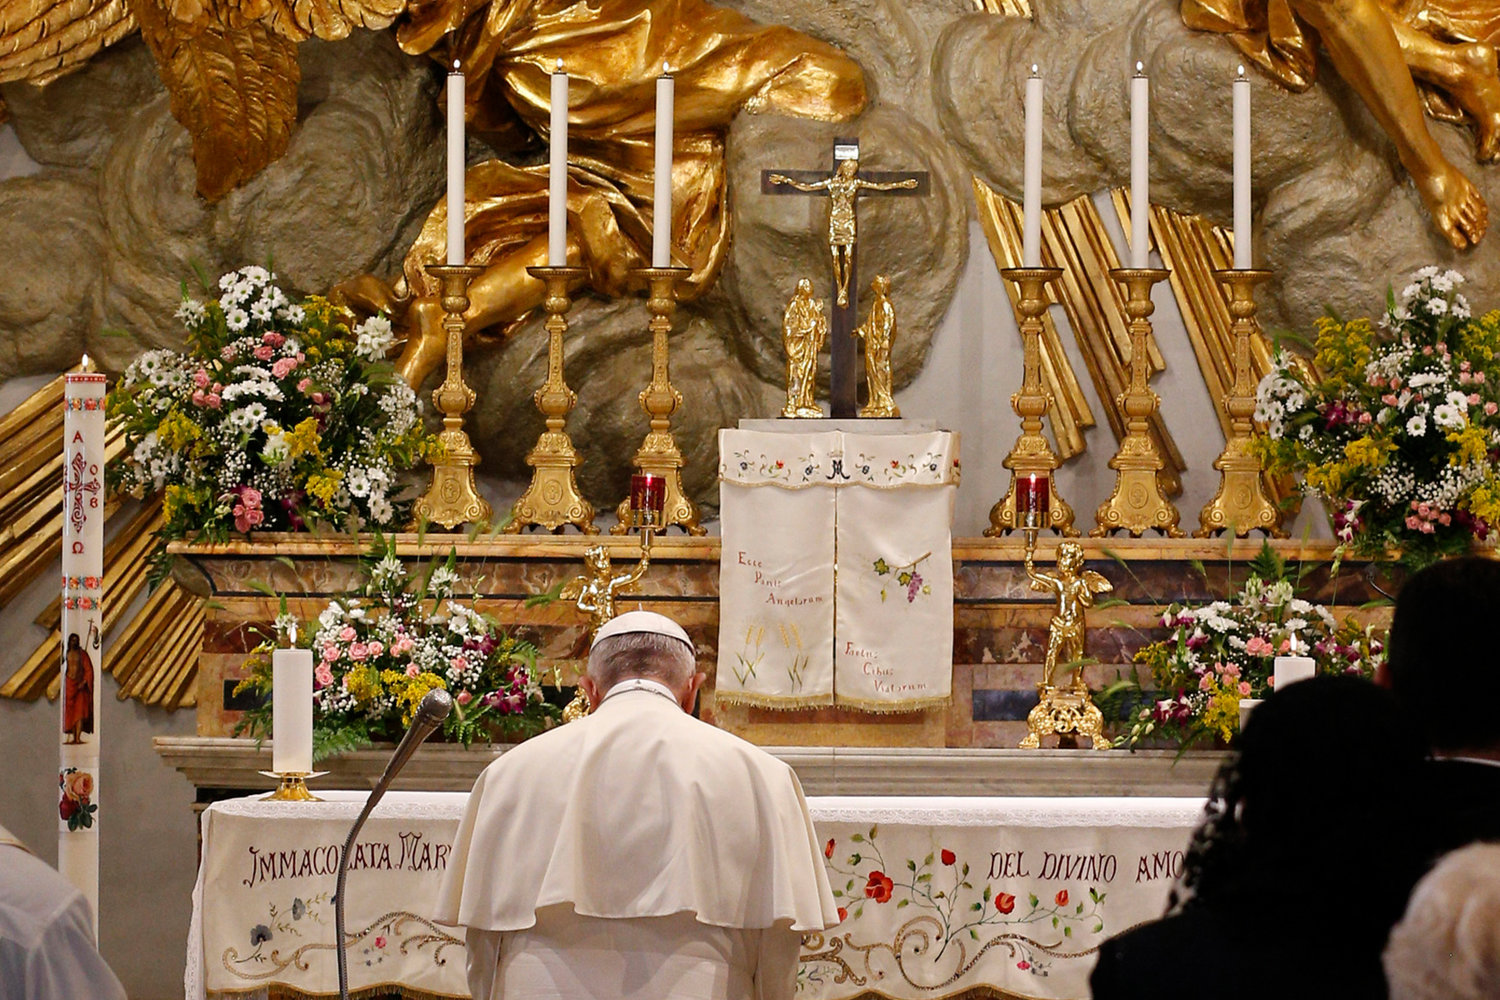 Pope Francis recites the rosary at the Shrine of Our Lady of Divine Love in Rome in this 2018 file photo. On March 11, 2020, in the midst of the COVID-19 pandemic, he entrusted the world to Mary.